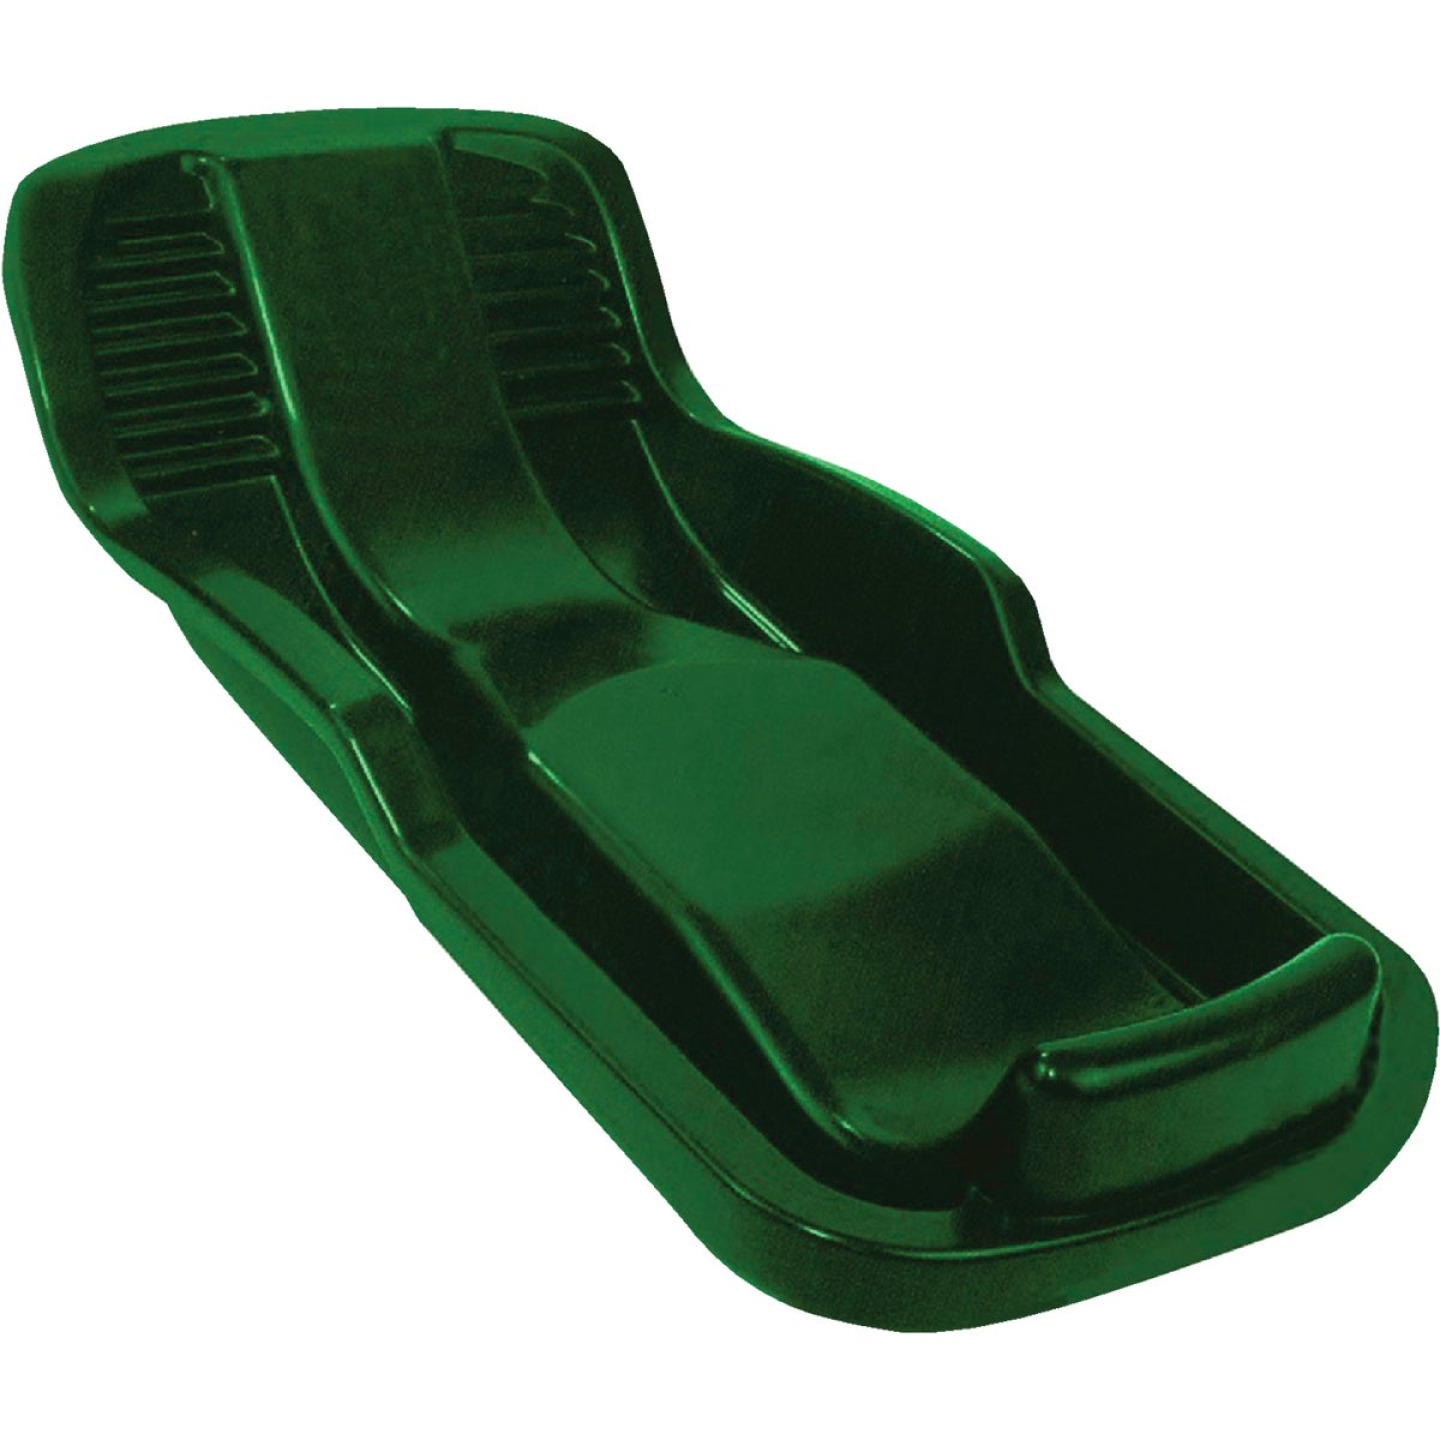 Flexible Flyer Winter Racer Polyethylene 38 In. Snow Sled Image 1